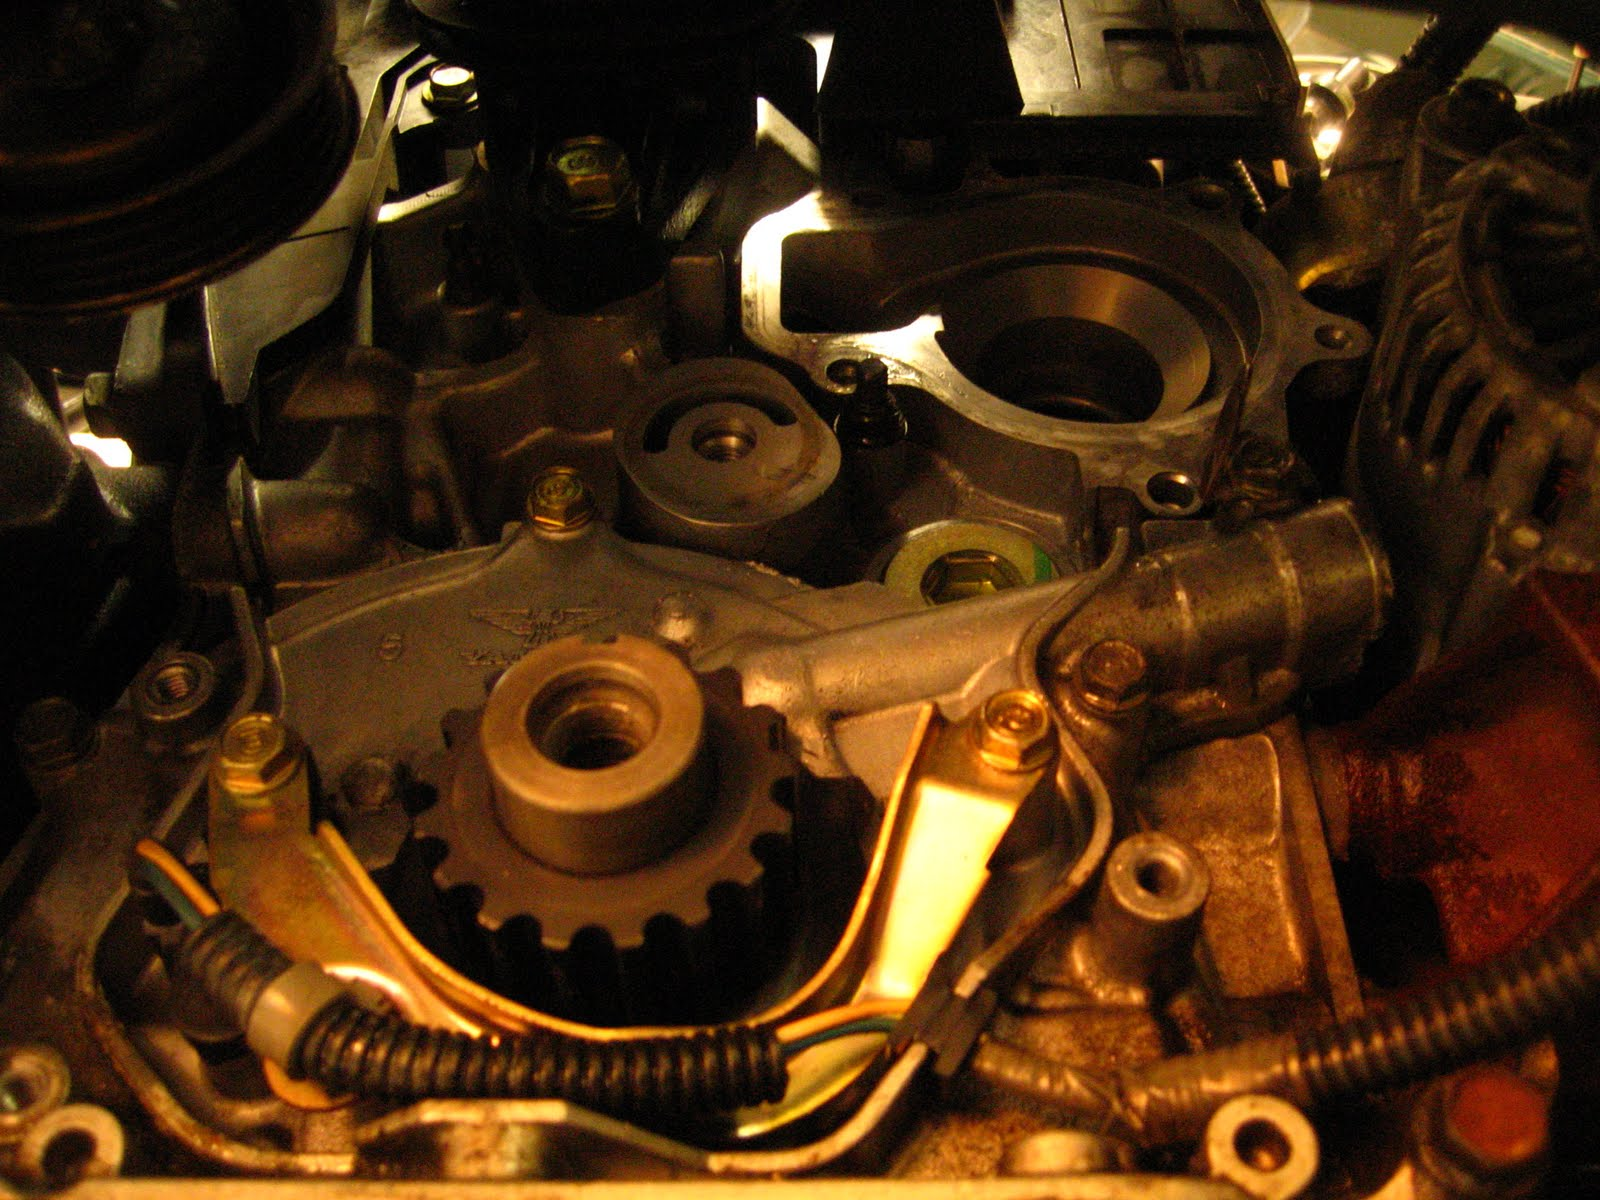 12900 drive belt 1 in addition tckwp286a as well CT1081 likewise awk1223 1 also s l1000 furthermore large in addition shaft likewise 191738152629 1 further toyota 20timing 20belt further 0x0 none in addition 13222 timingbelt. on 2000 honda accord timing belt repment cost